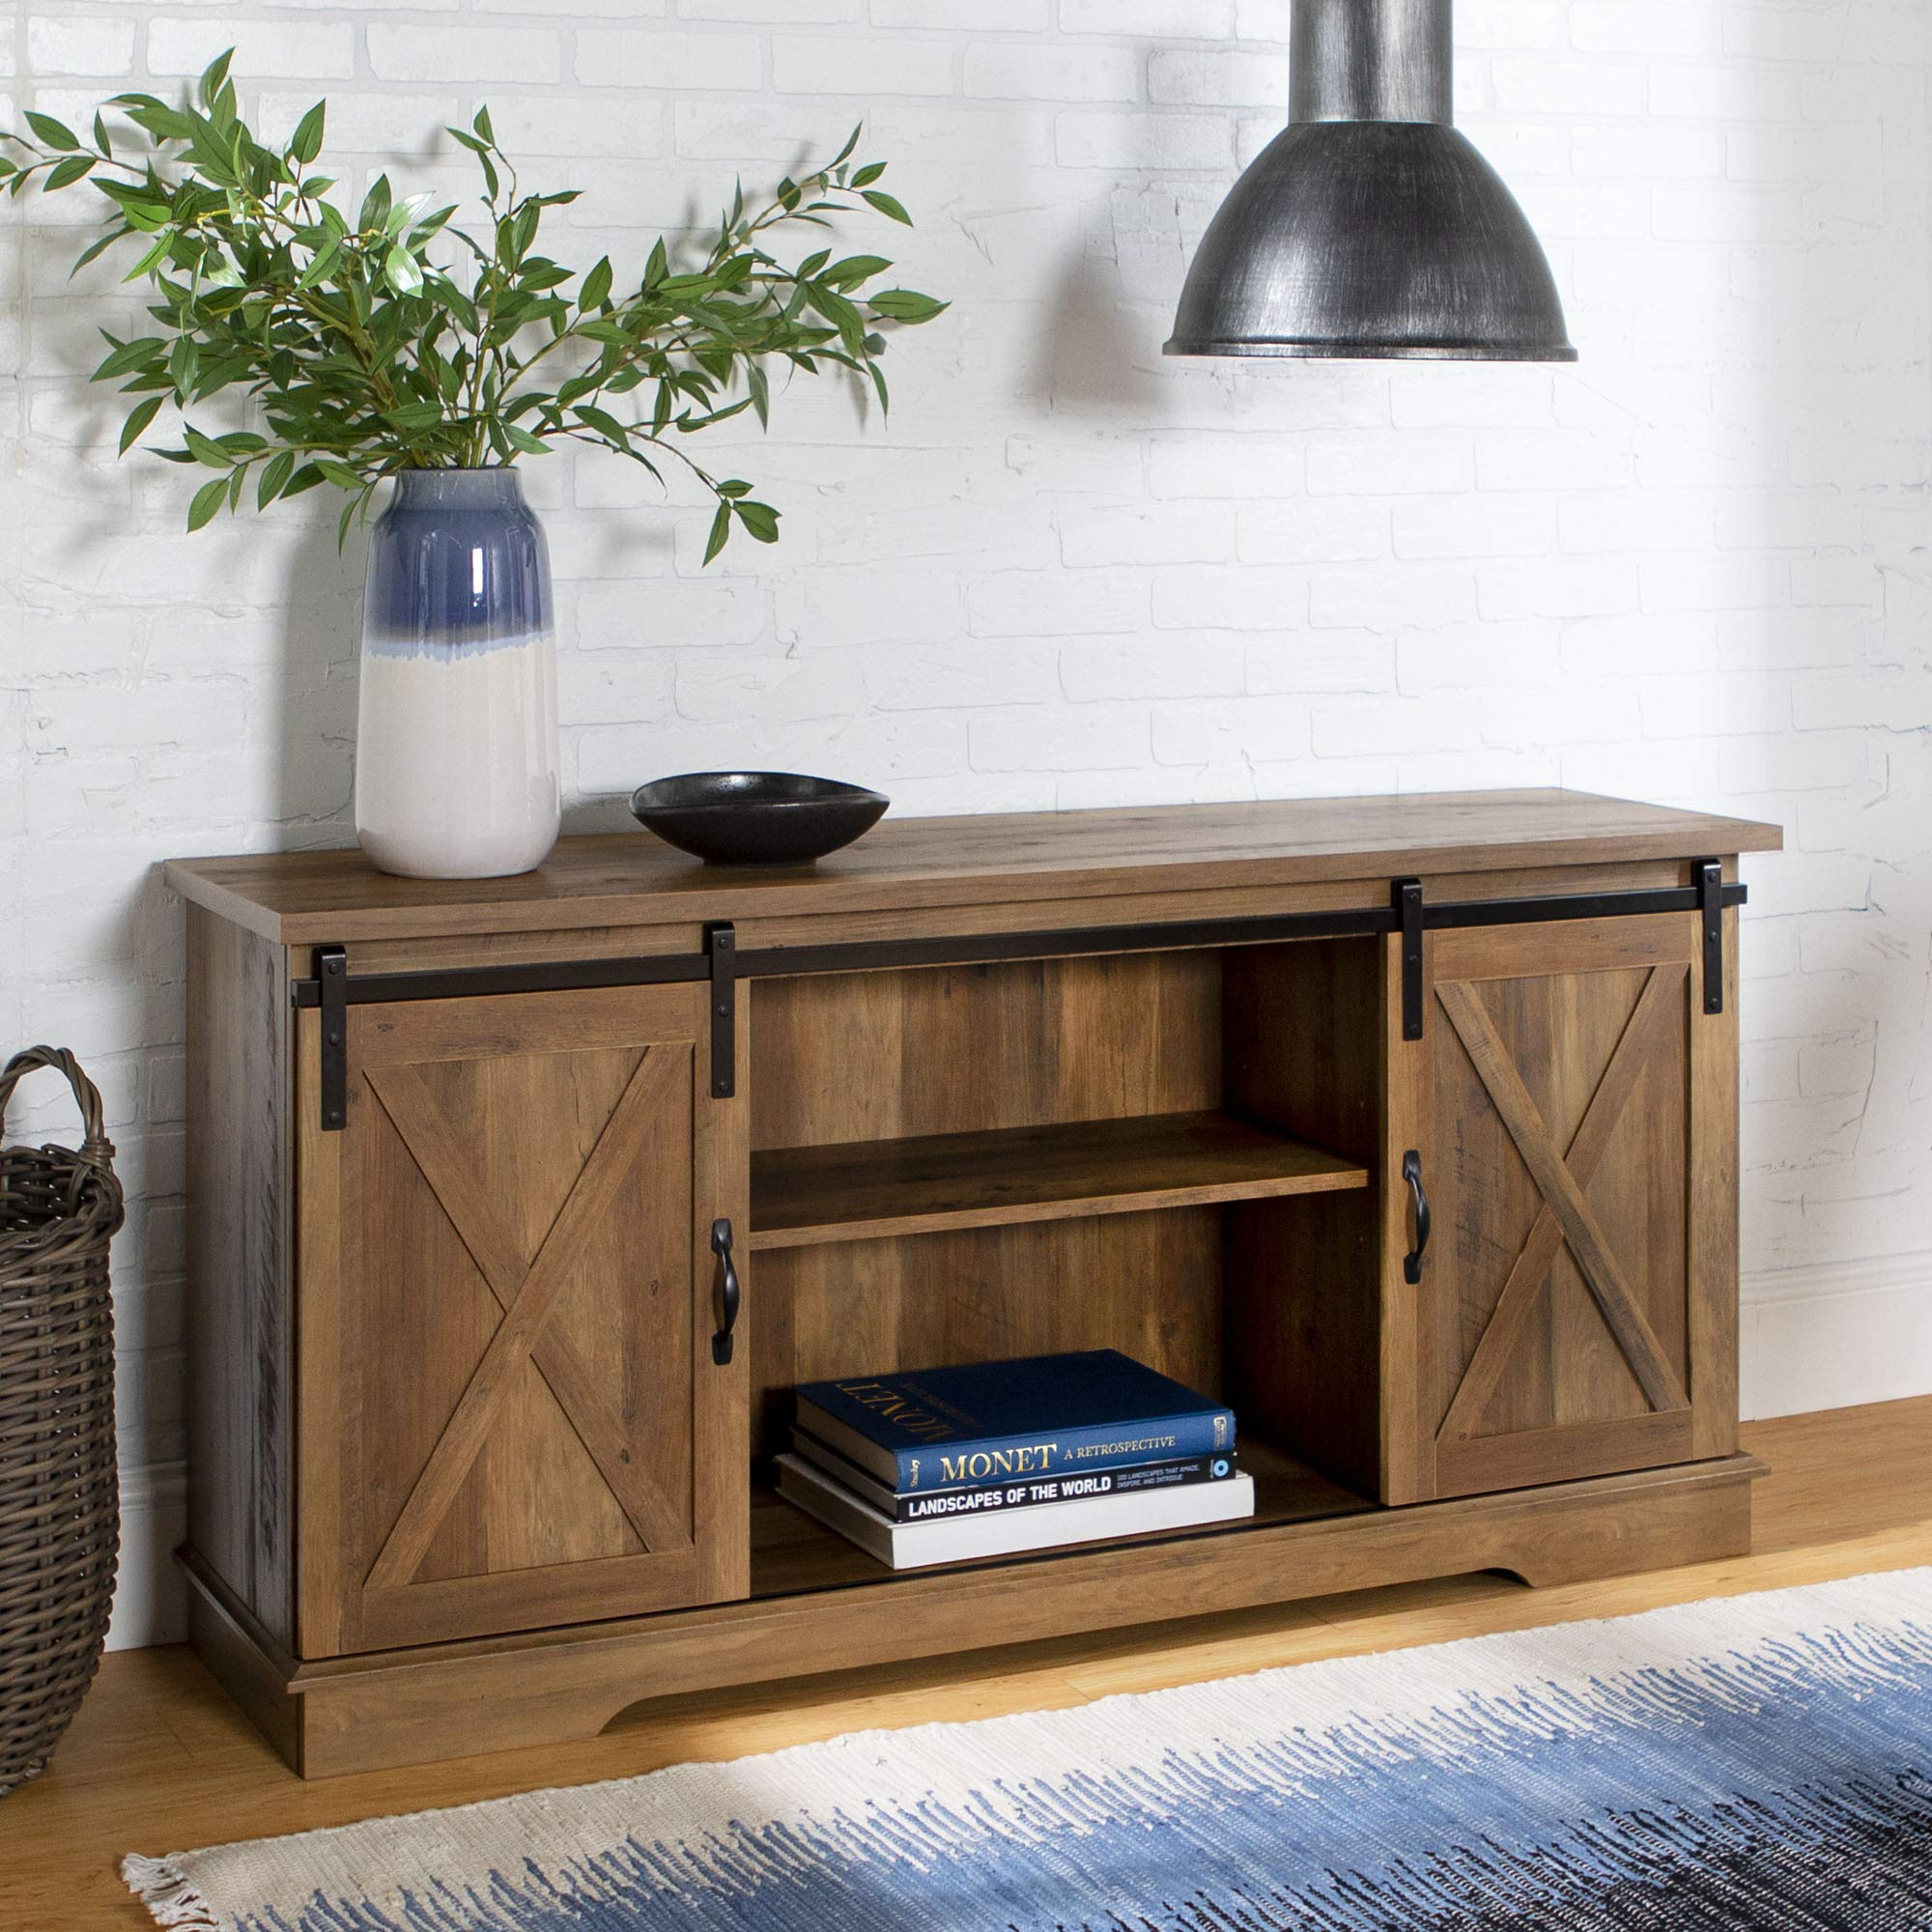 Home Accent Furnishings New 58 Inch Sliding Barn Door Television Stand - Rustic Oak Finish by Home Accent Furnishings